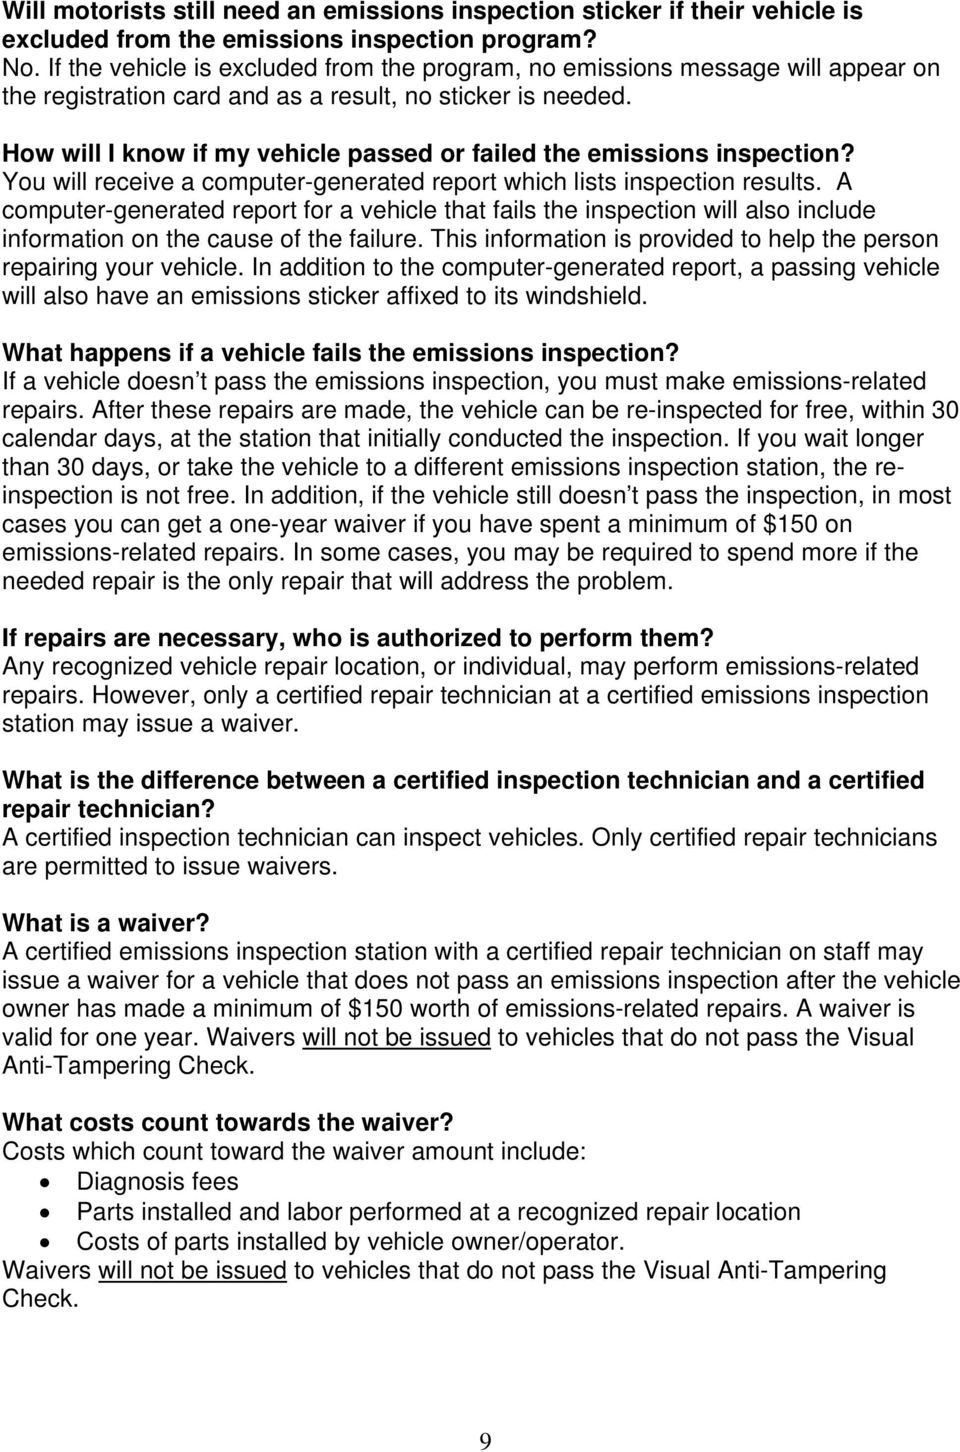 How will I know if my vehicle passed or failed the emissions inspection? You will receive a computer-generated report which lists inspection results.